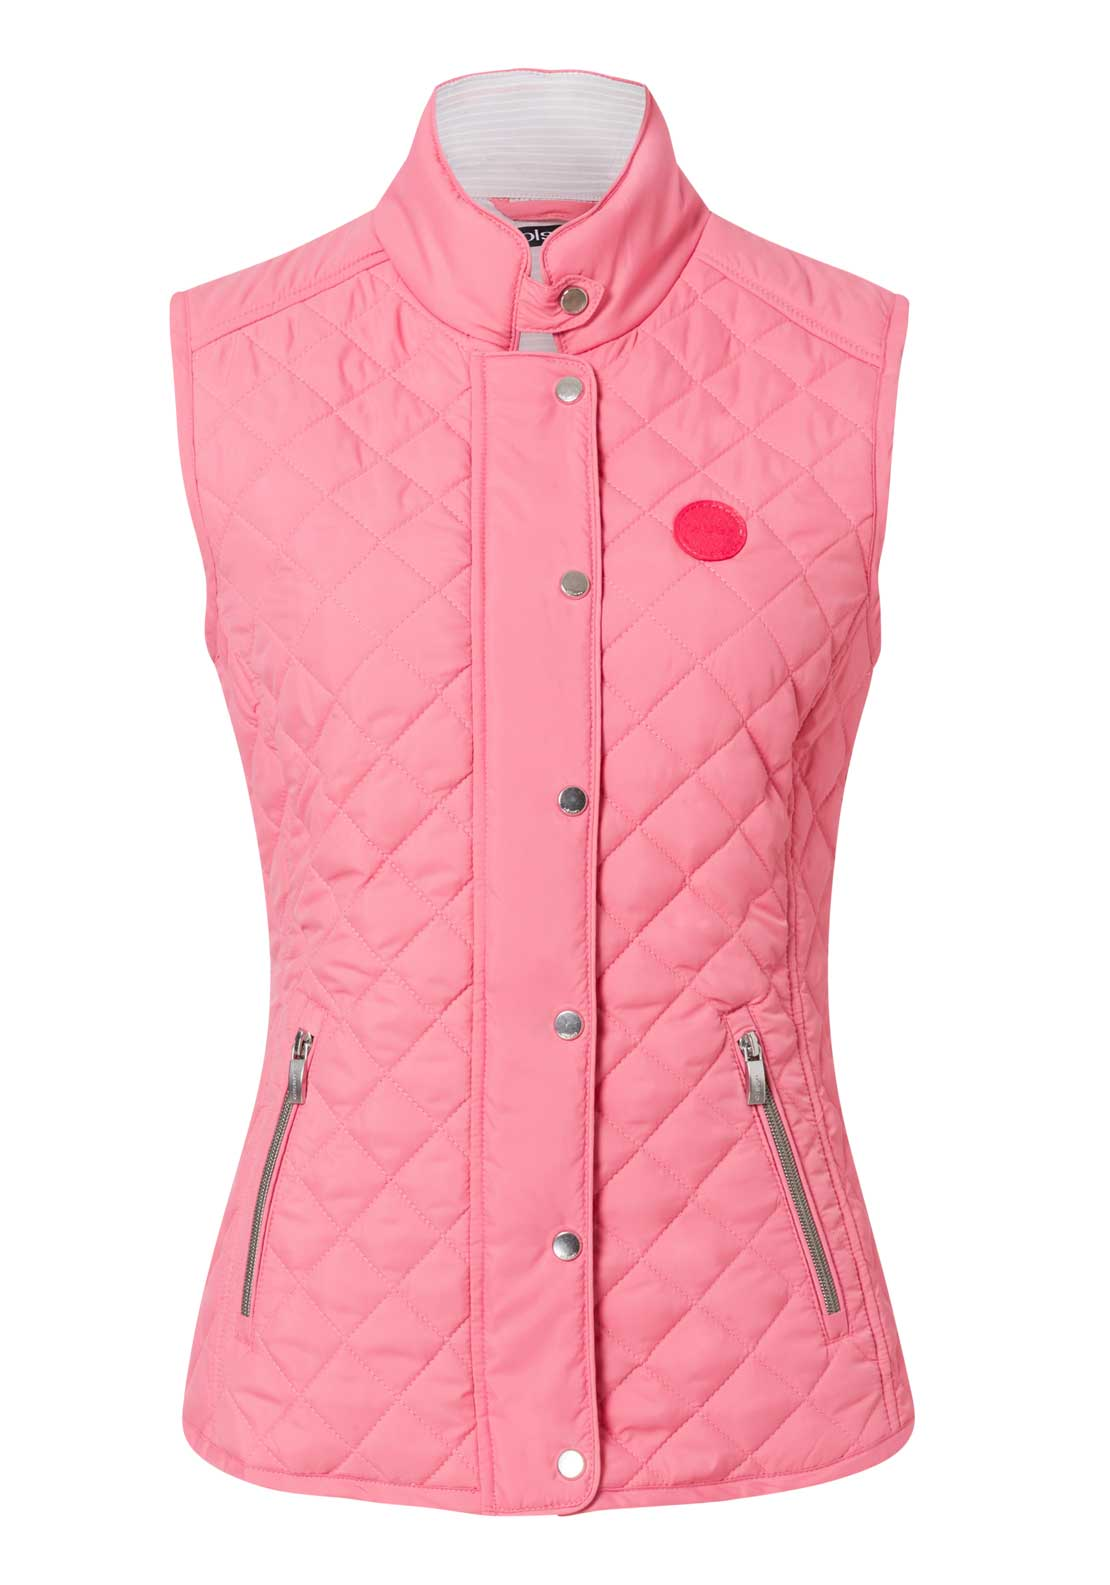 Olsen Quilted Gilet Waistcoat, Salmon Pink